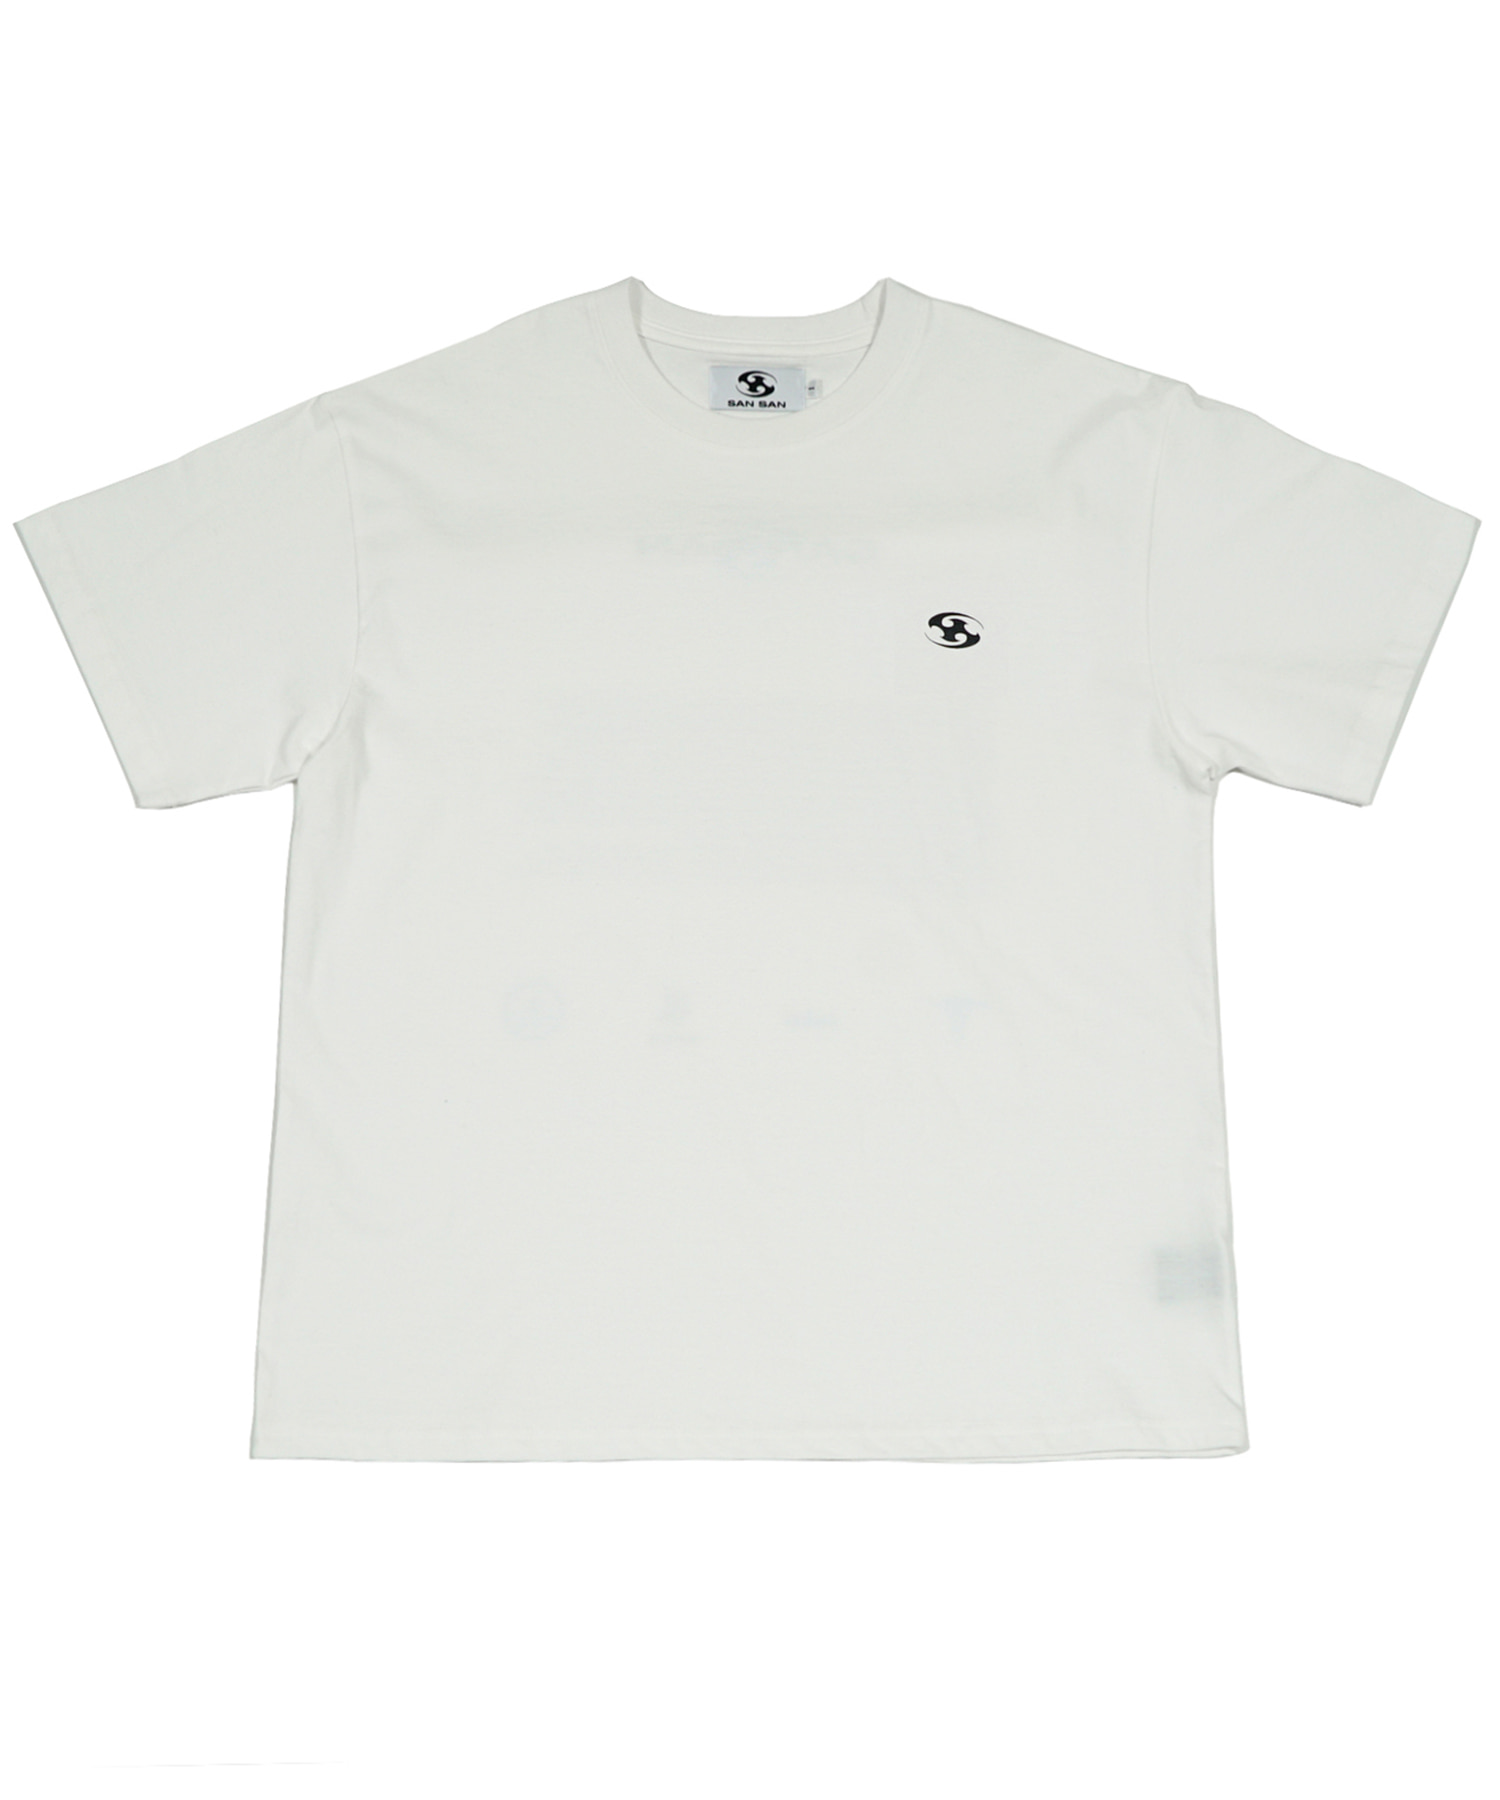 LOGO T-SHIRTS WHITE